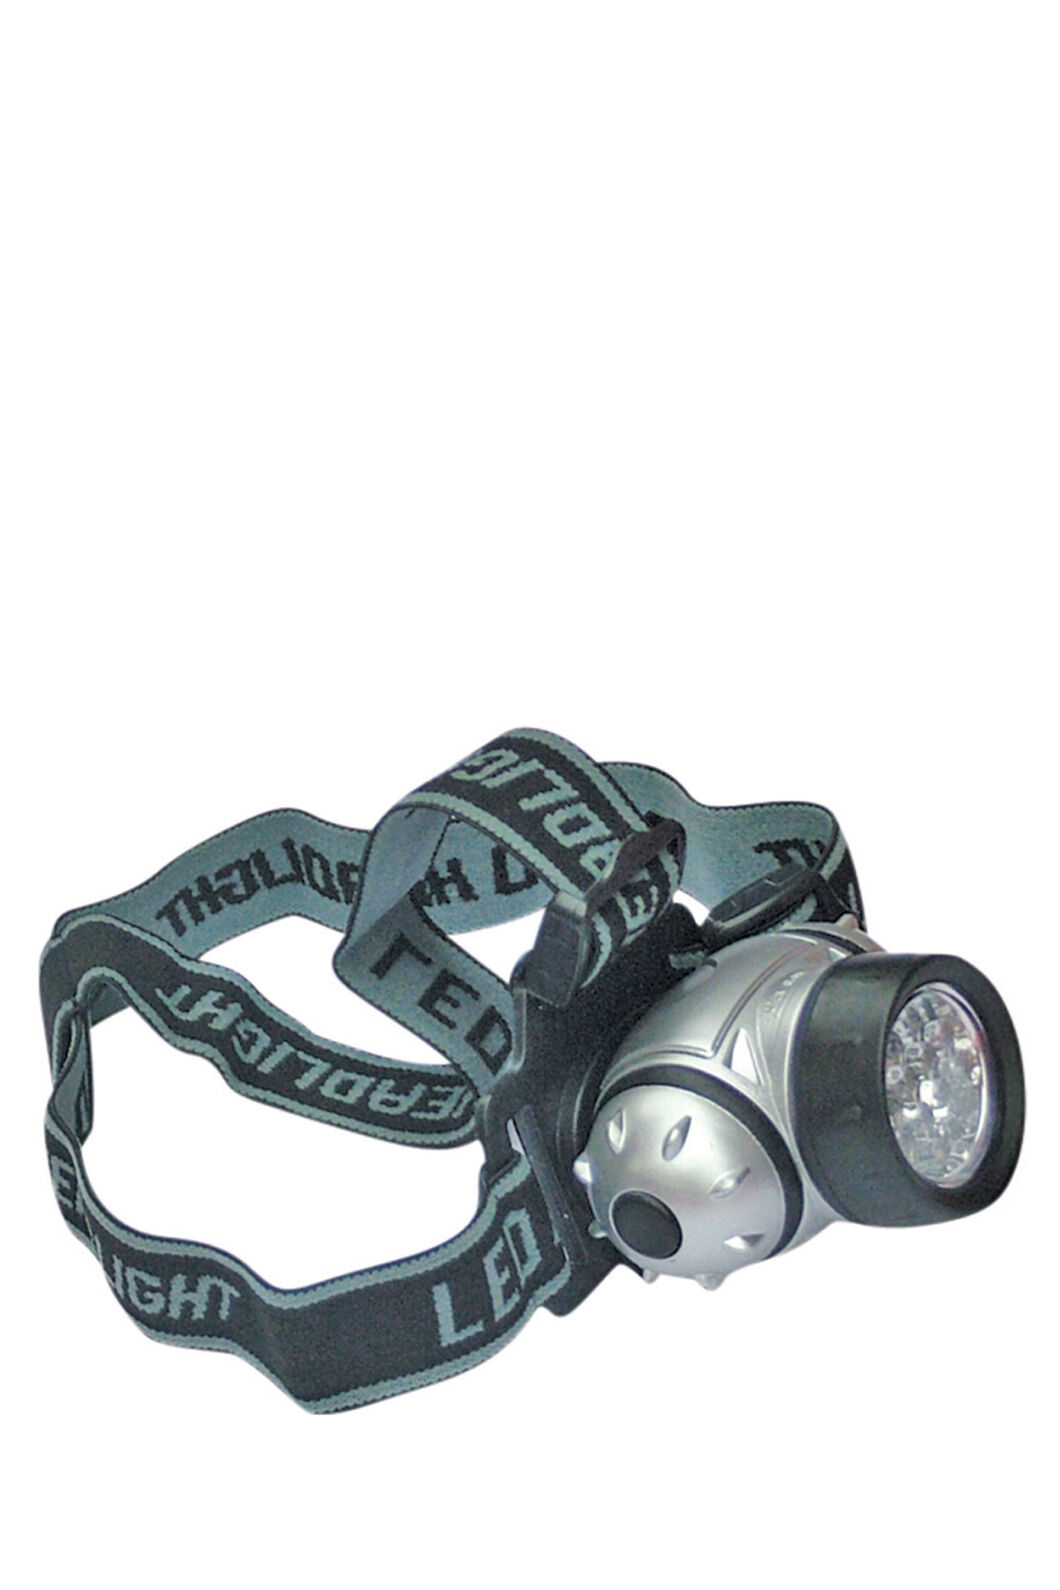 Wild Country LED Headlamp, None, hi-res